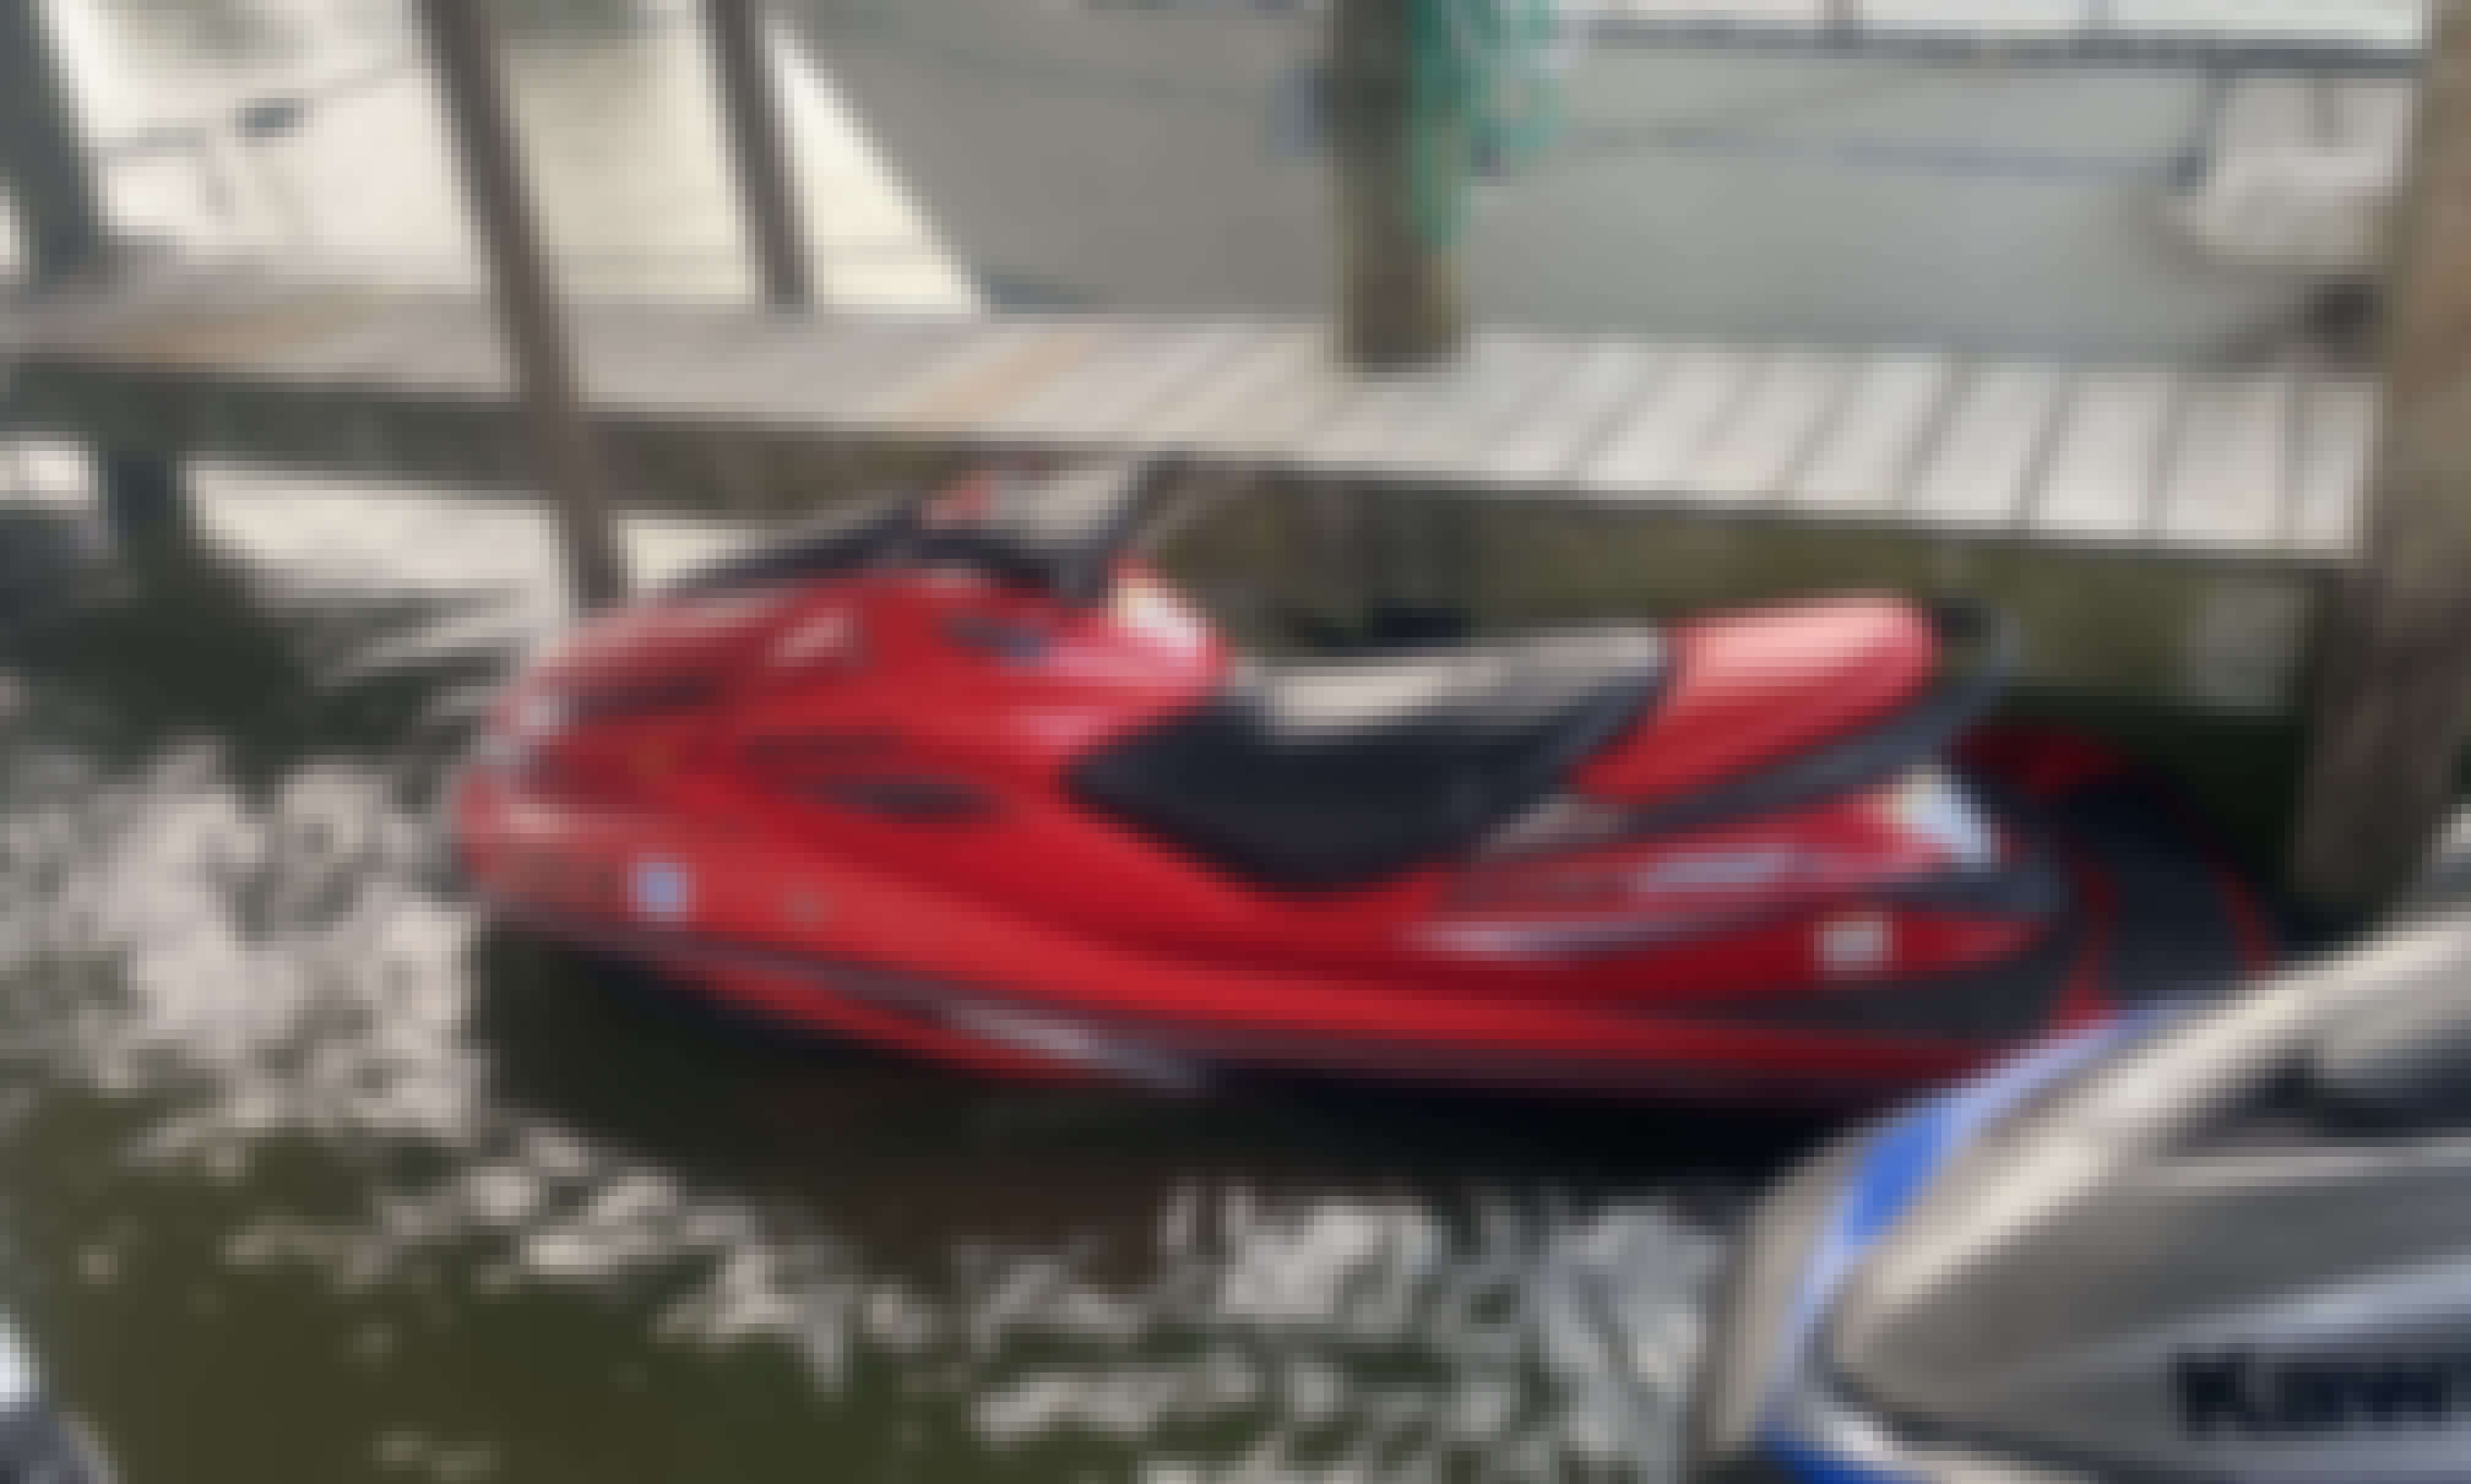 The Jet Skis Drip Experience from Seabrook, Texas